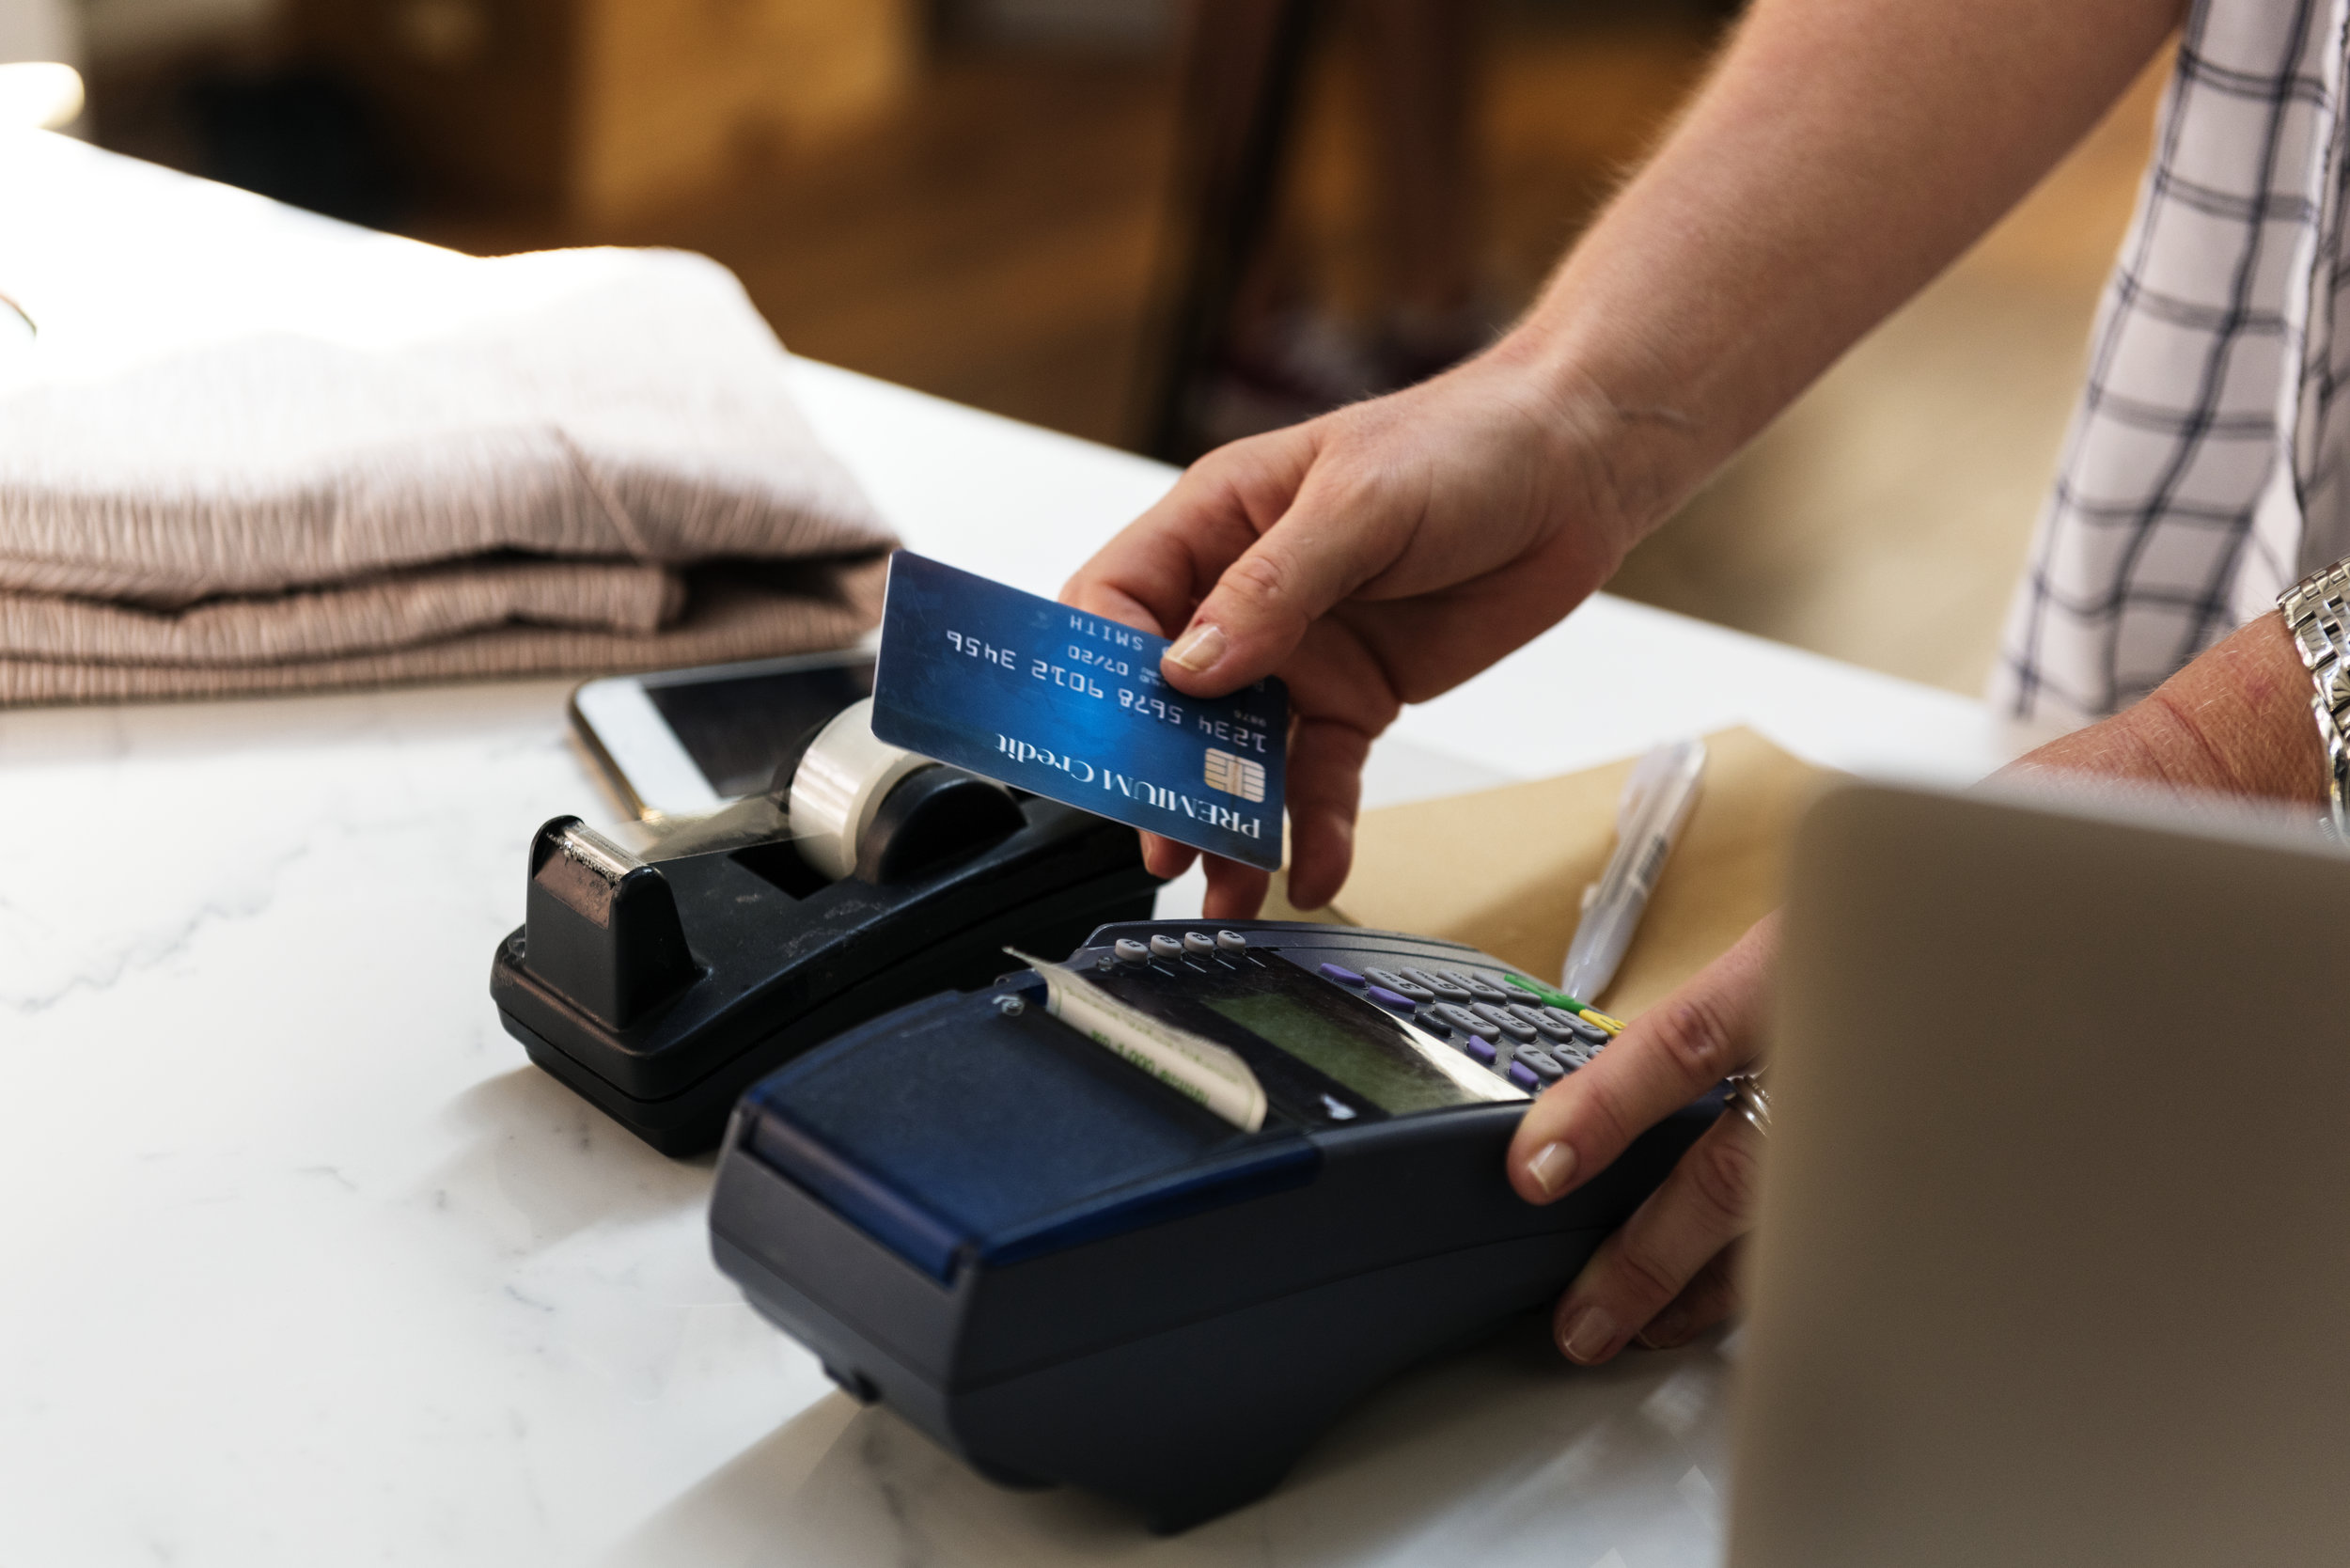 A credit card during a transaction.